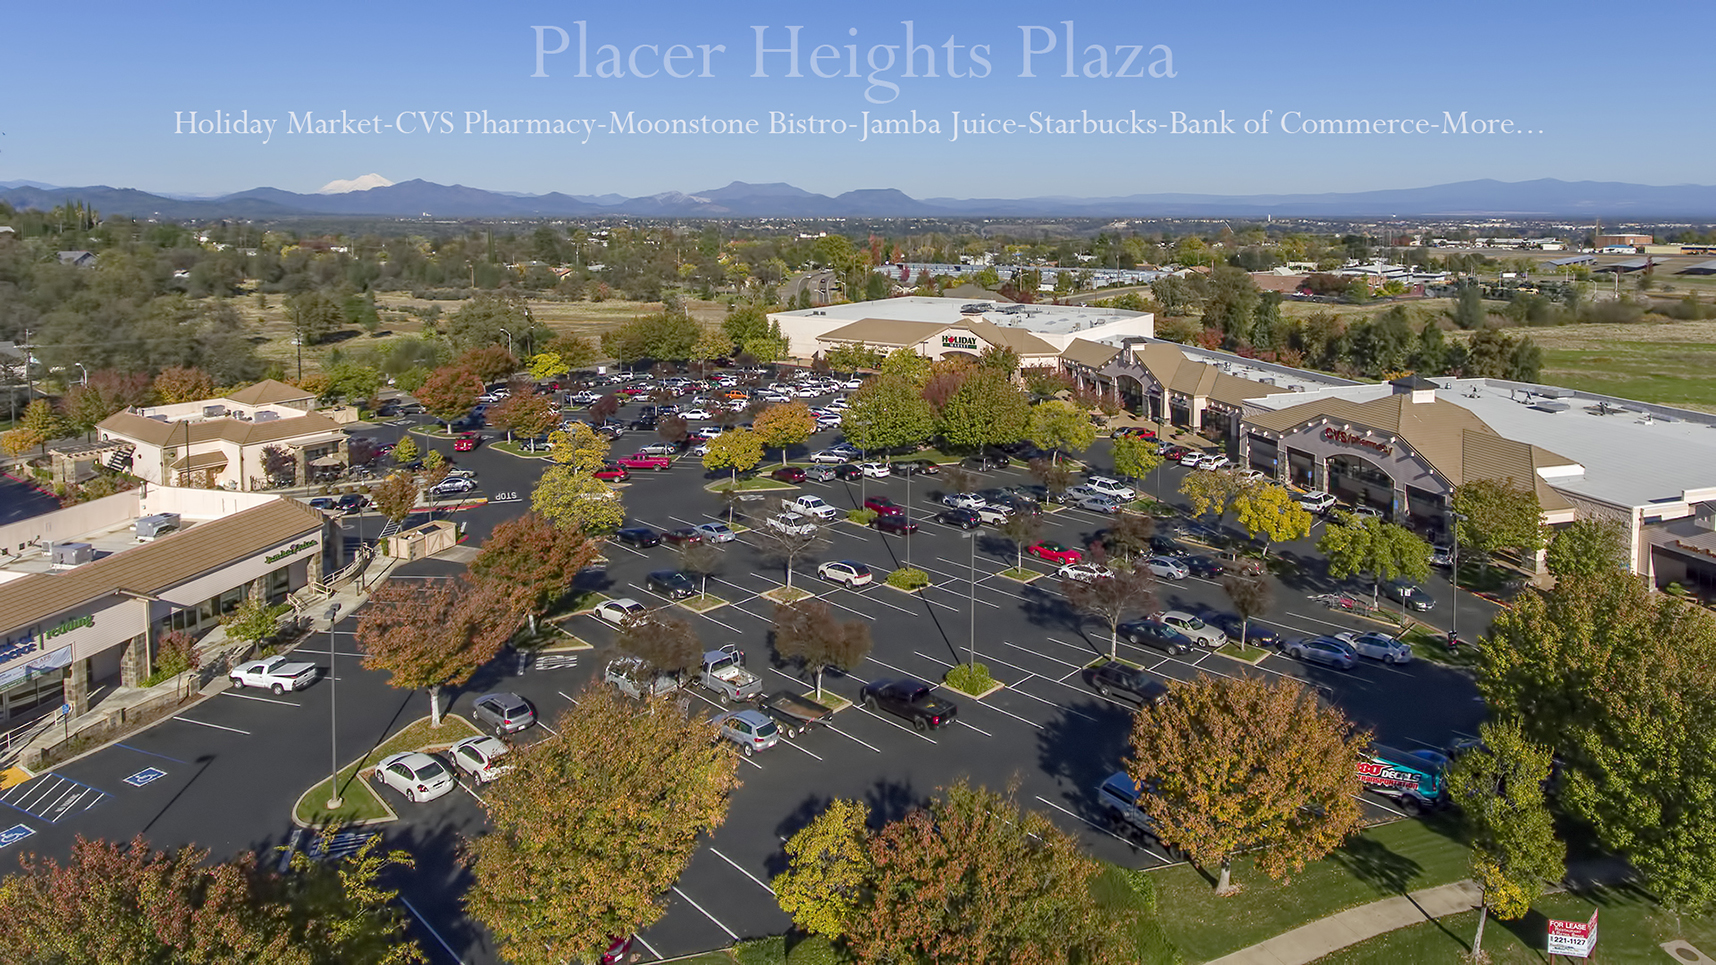 Placer Heights Plaza